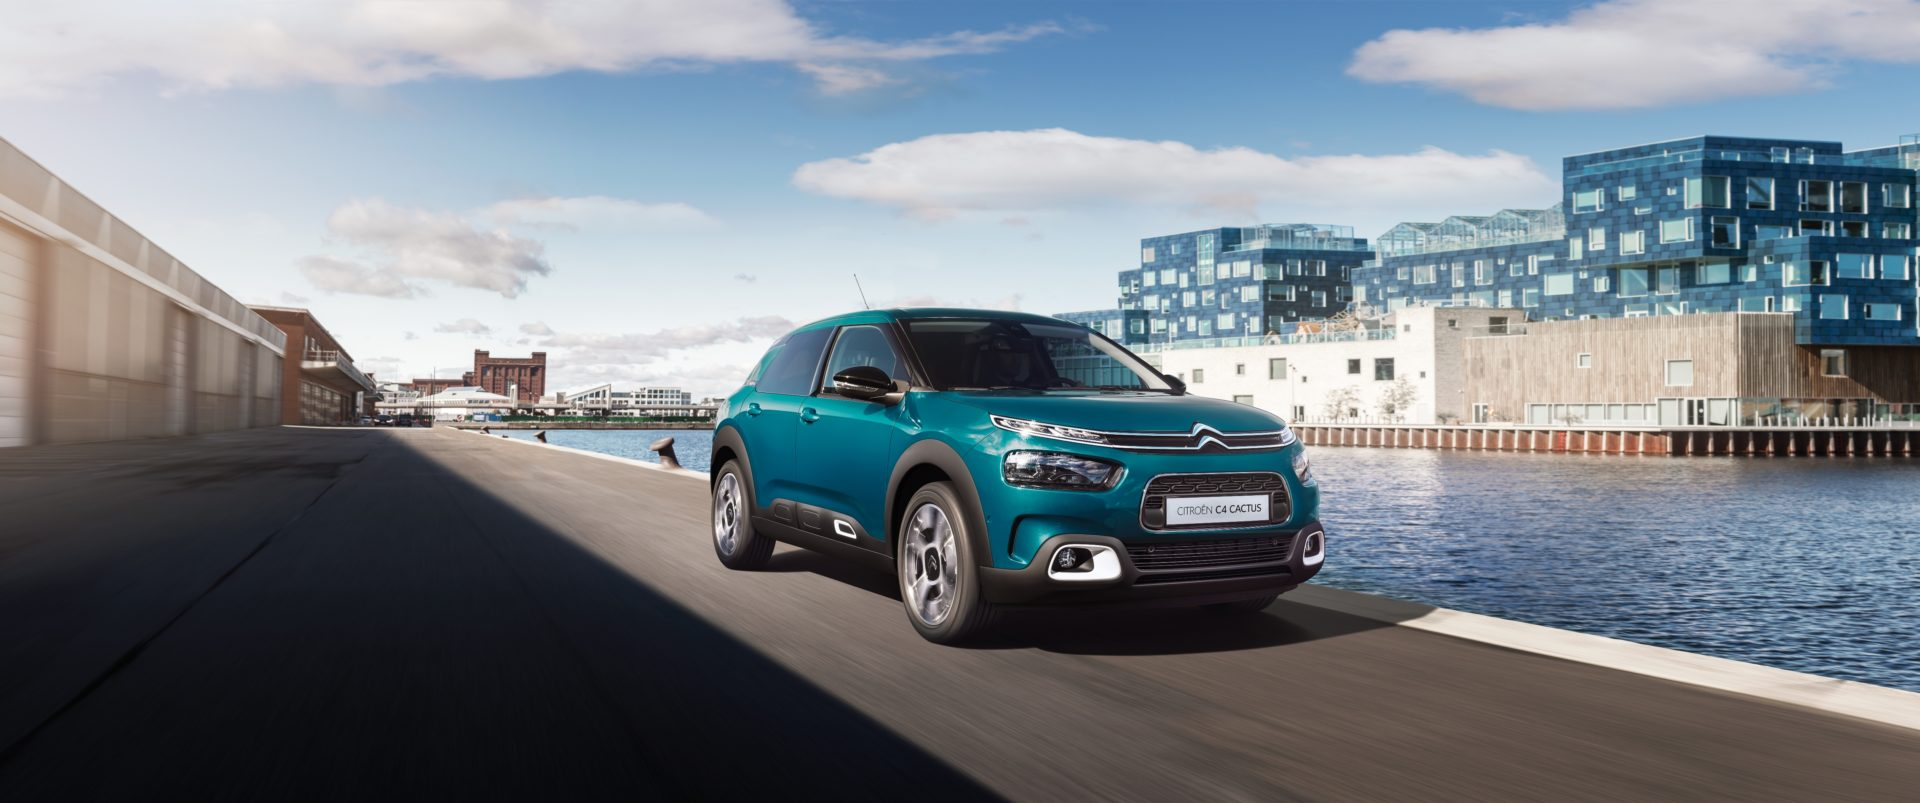 New Citroen C4 Cactus for £245 per Month